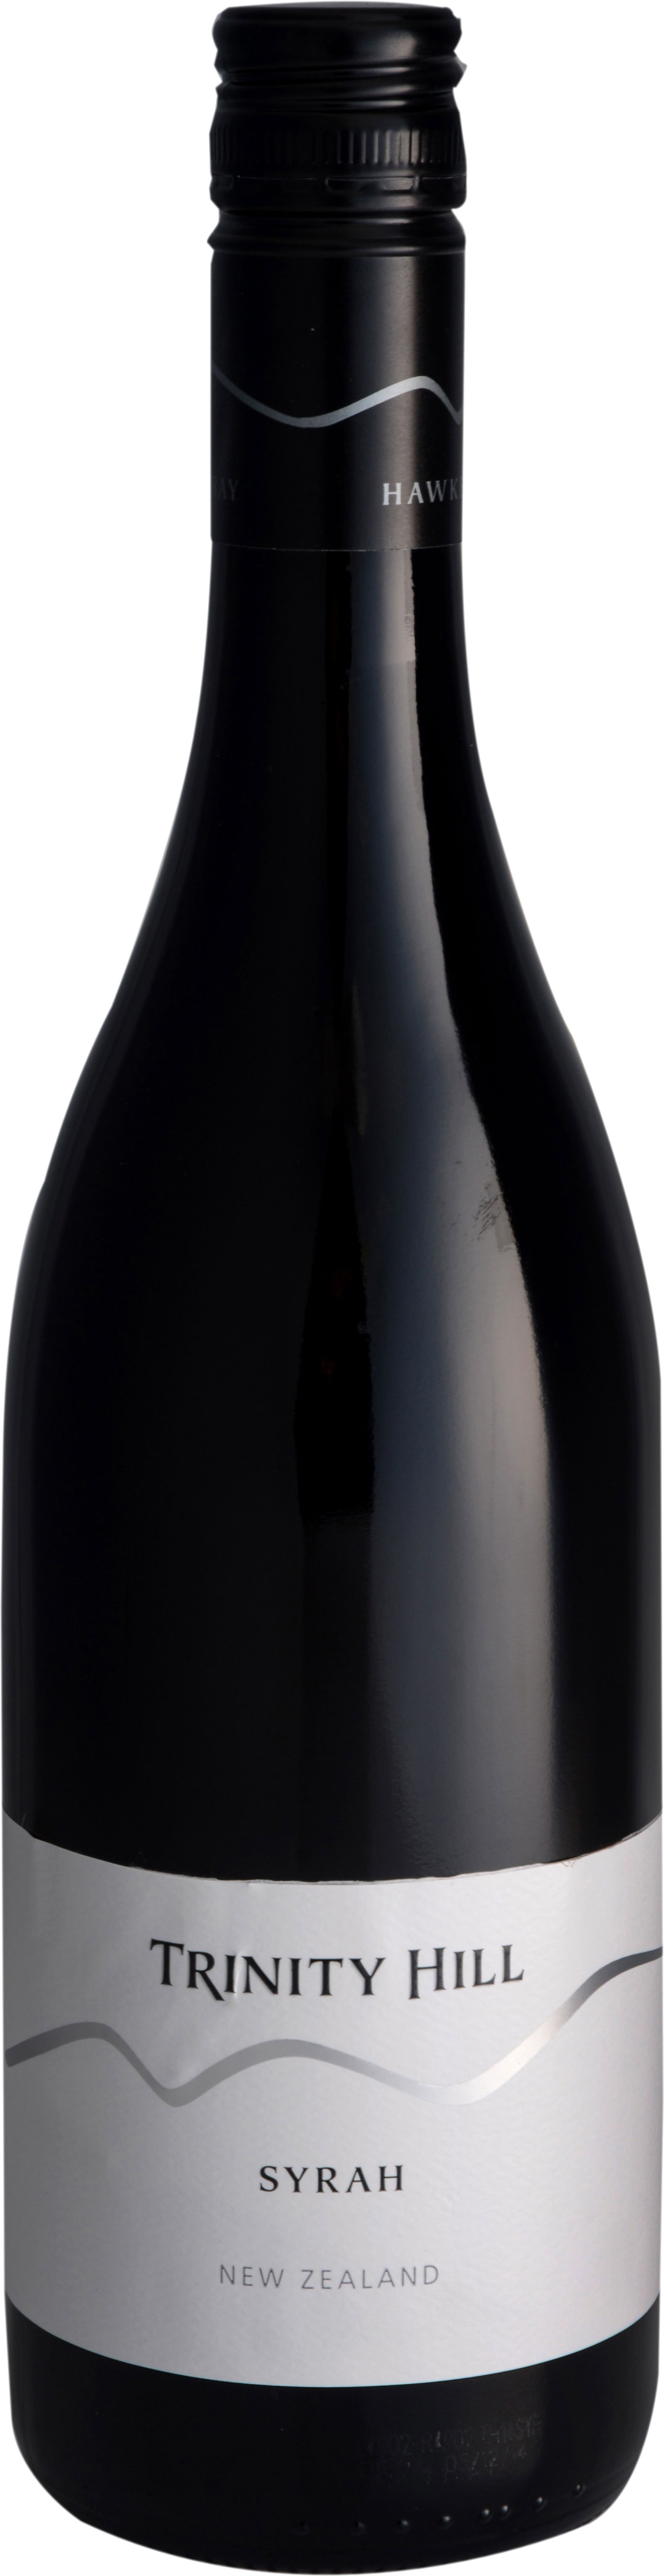 Trinity Hill  Hawkes Bay Syrah 2014 75cl Bottle